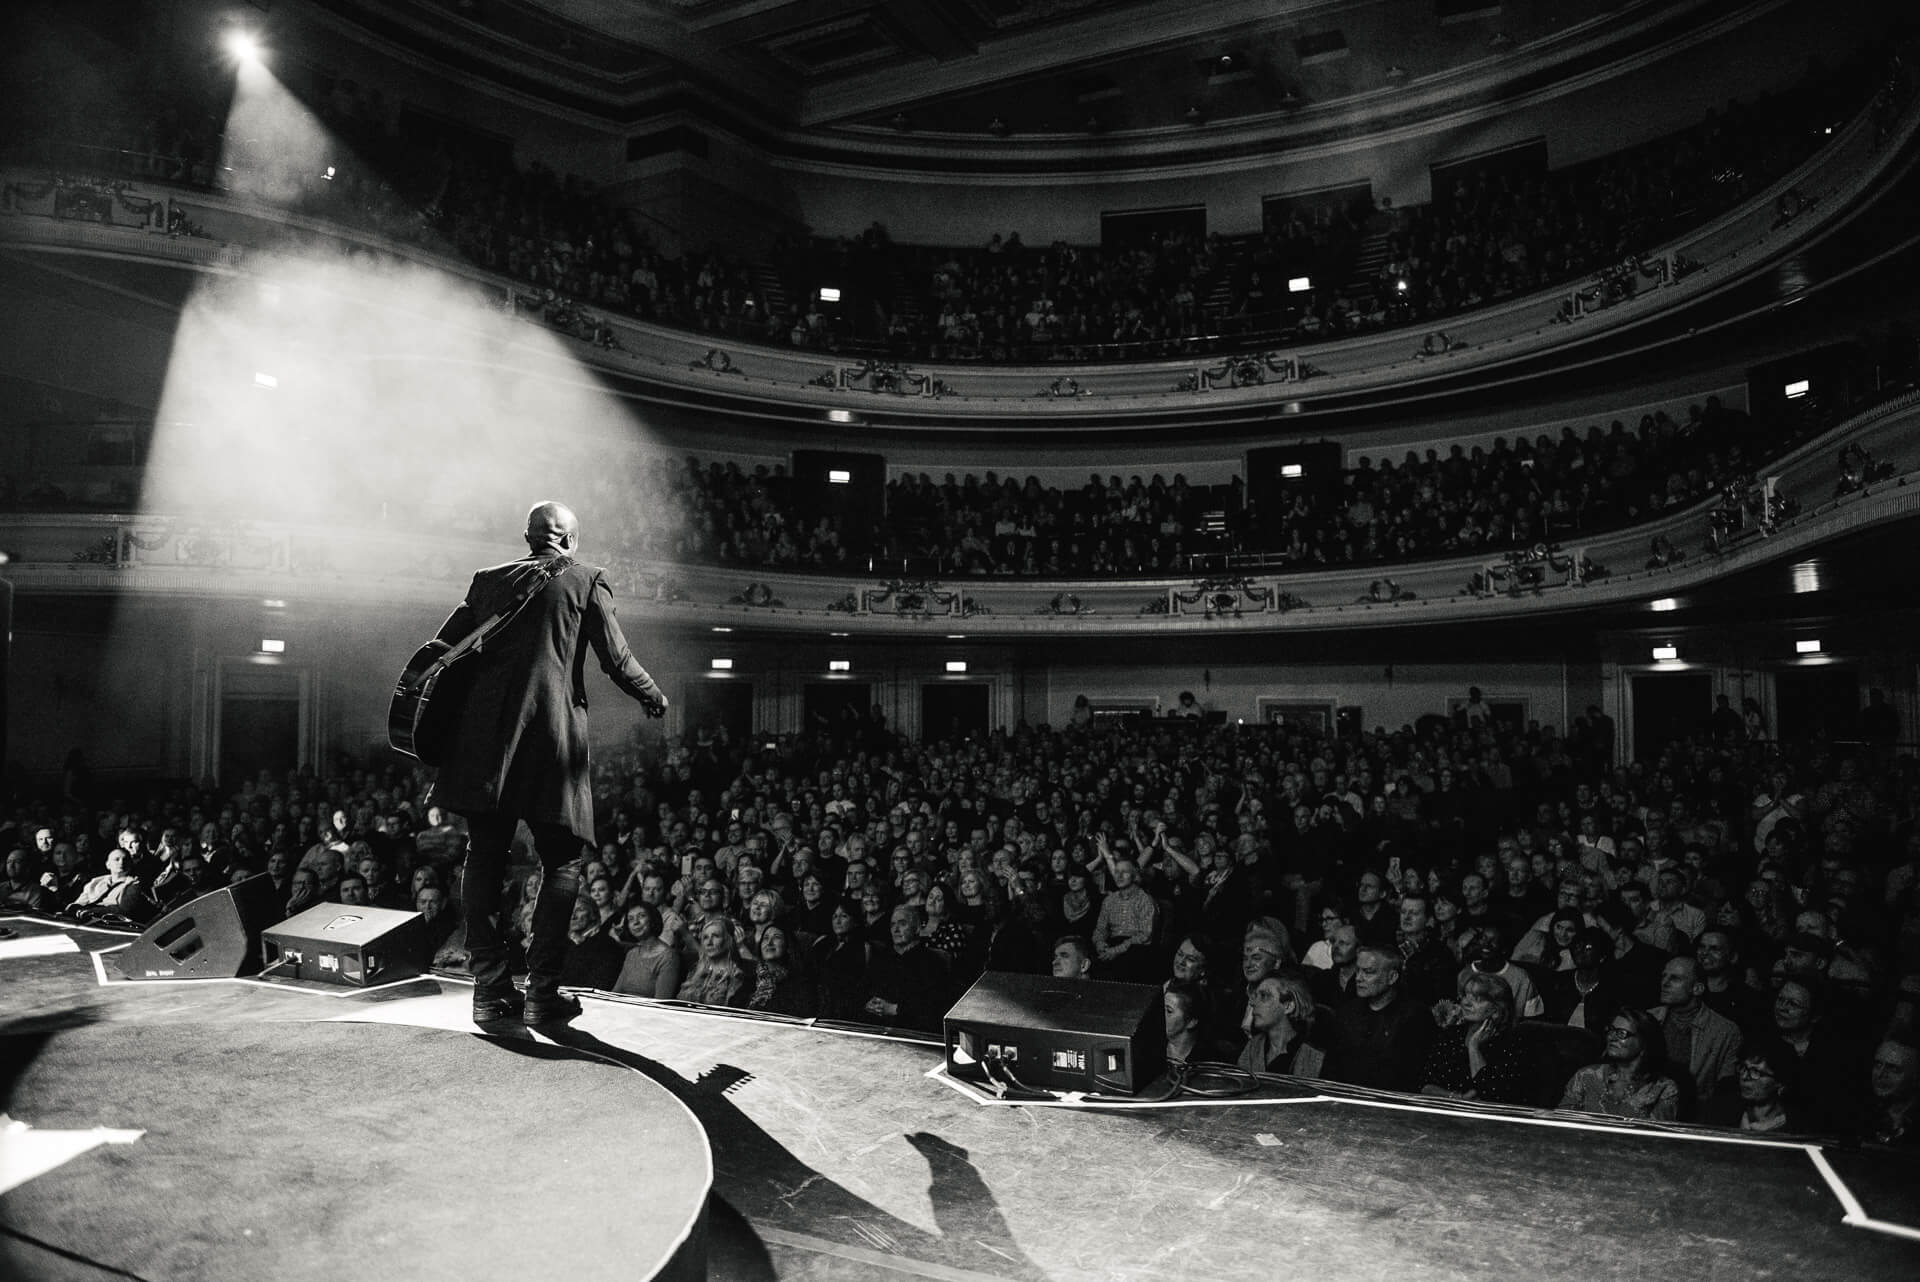 seal_live-usher_hall-ryanjohnstonco-27